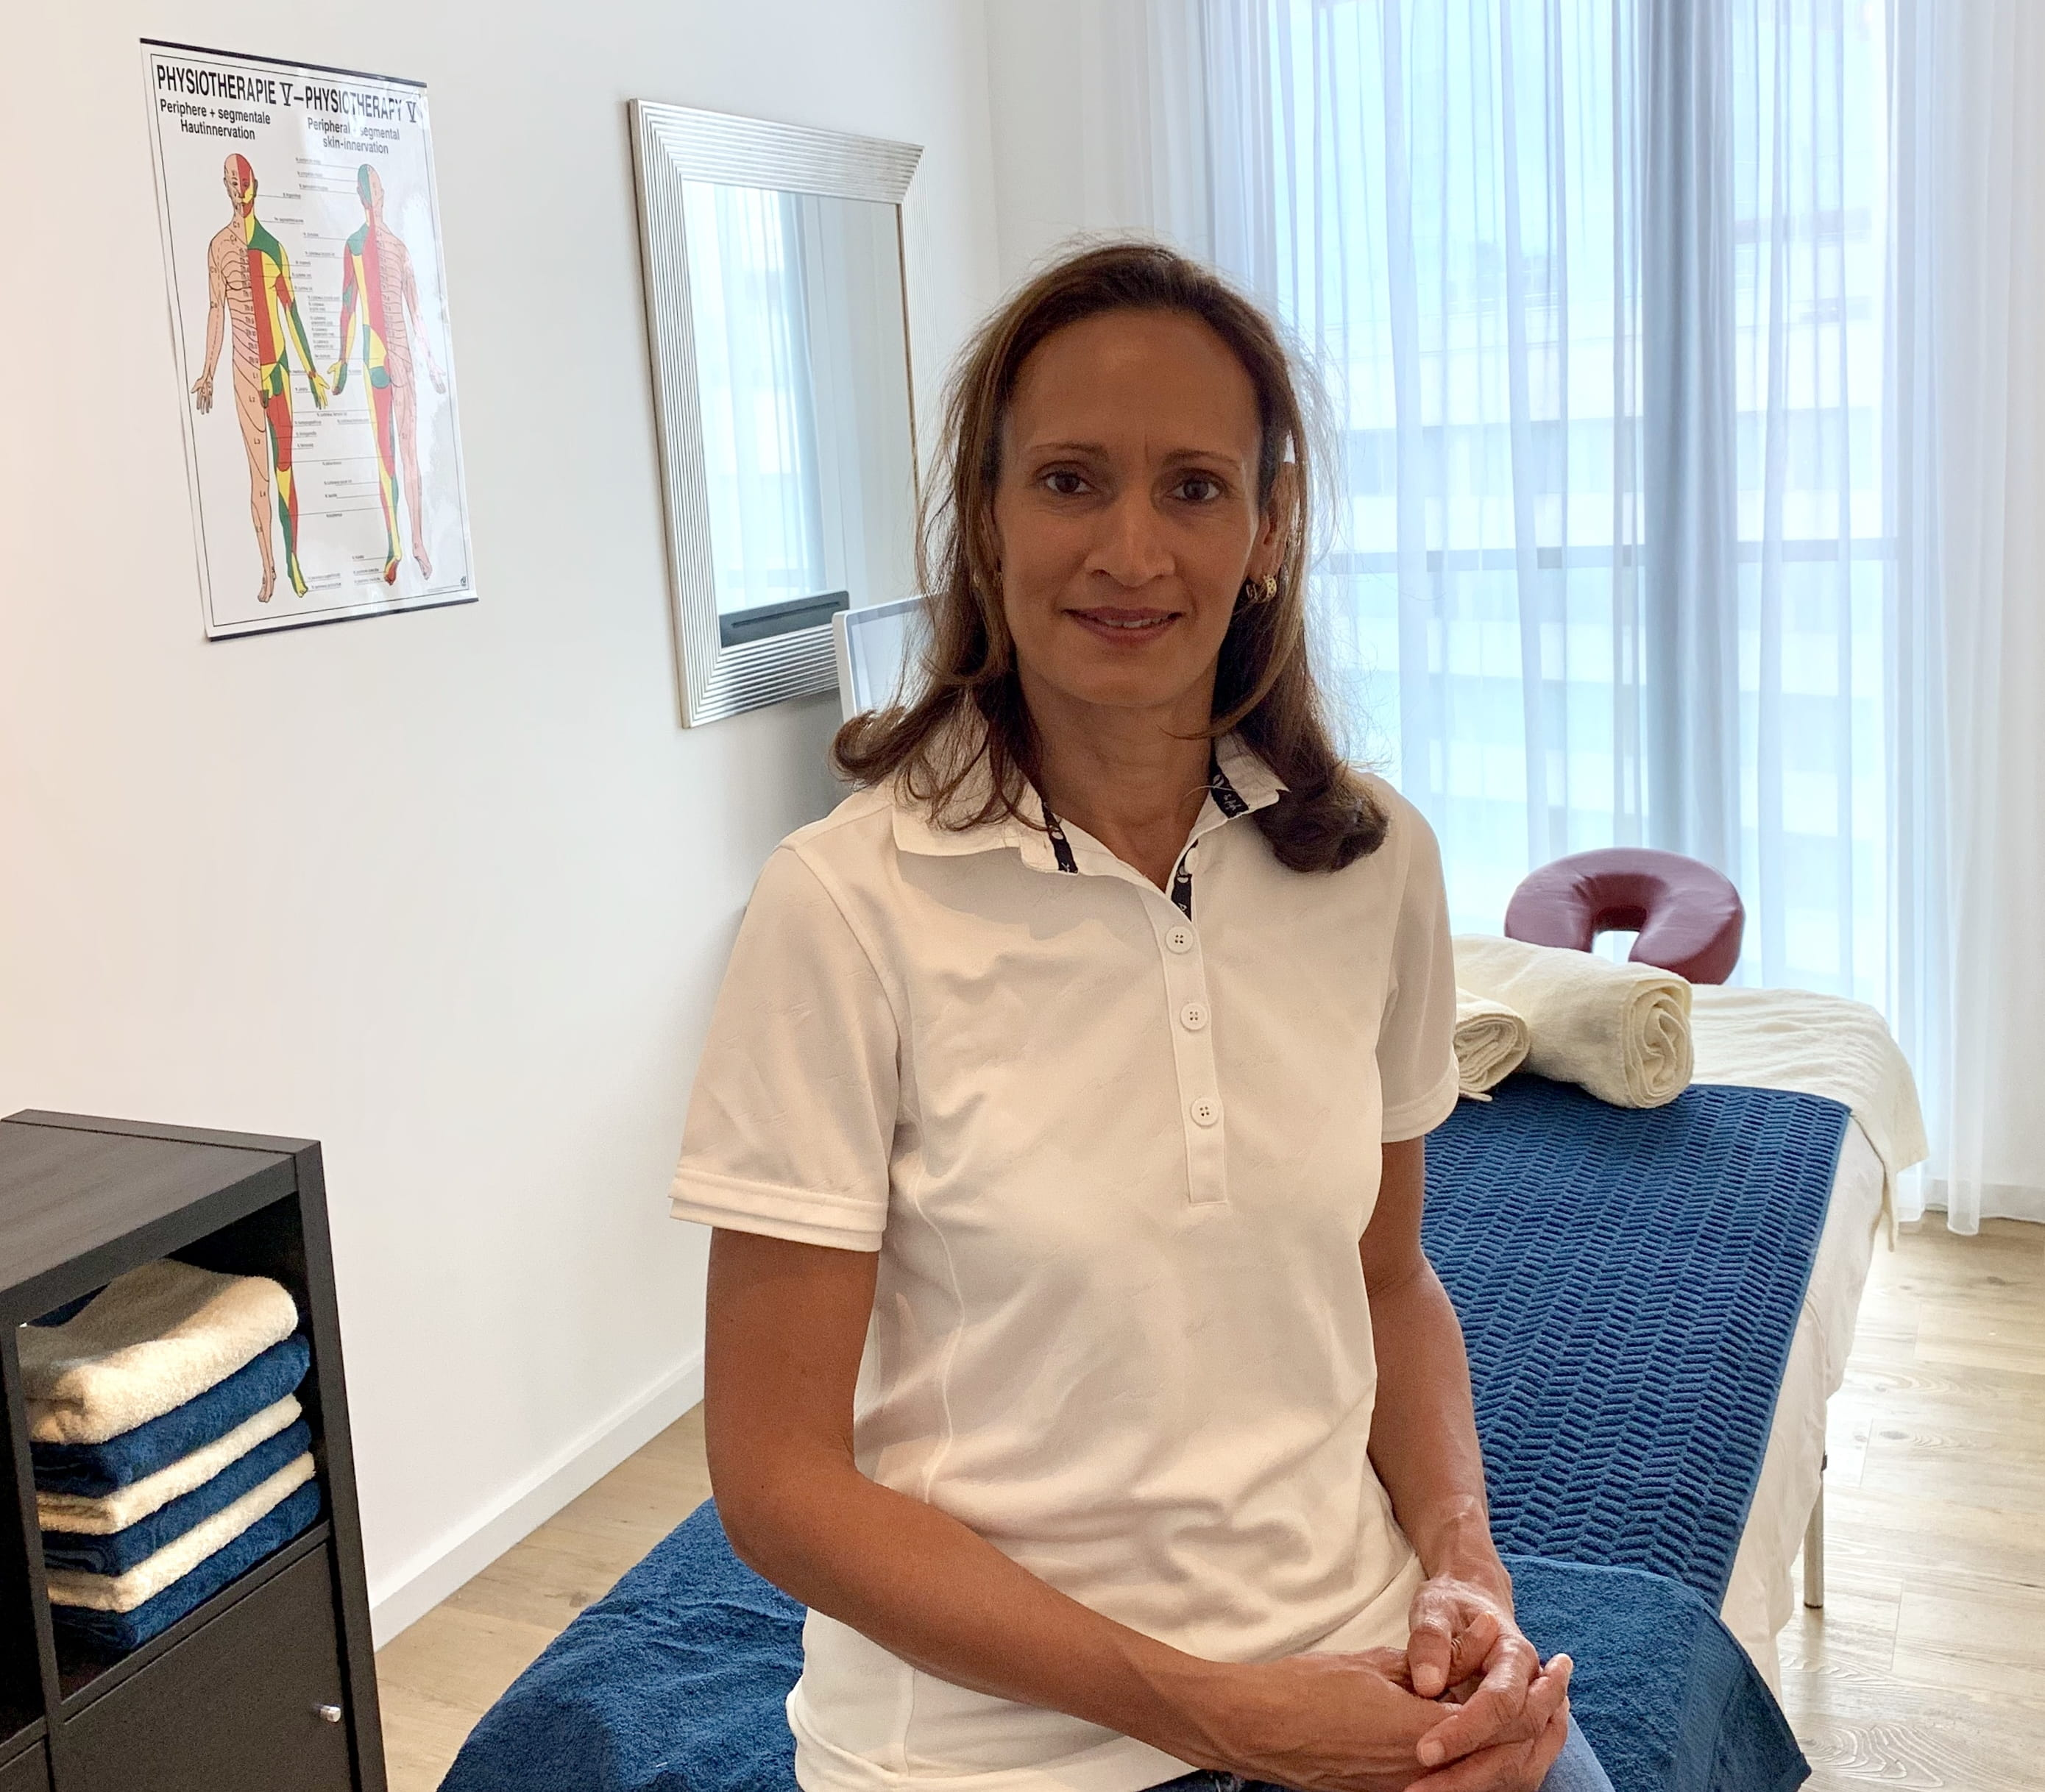 sportmassage sporttherapie massage rotterdam centrum